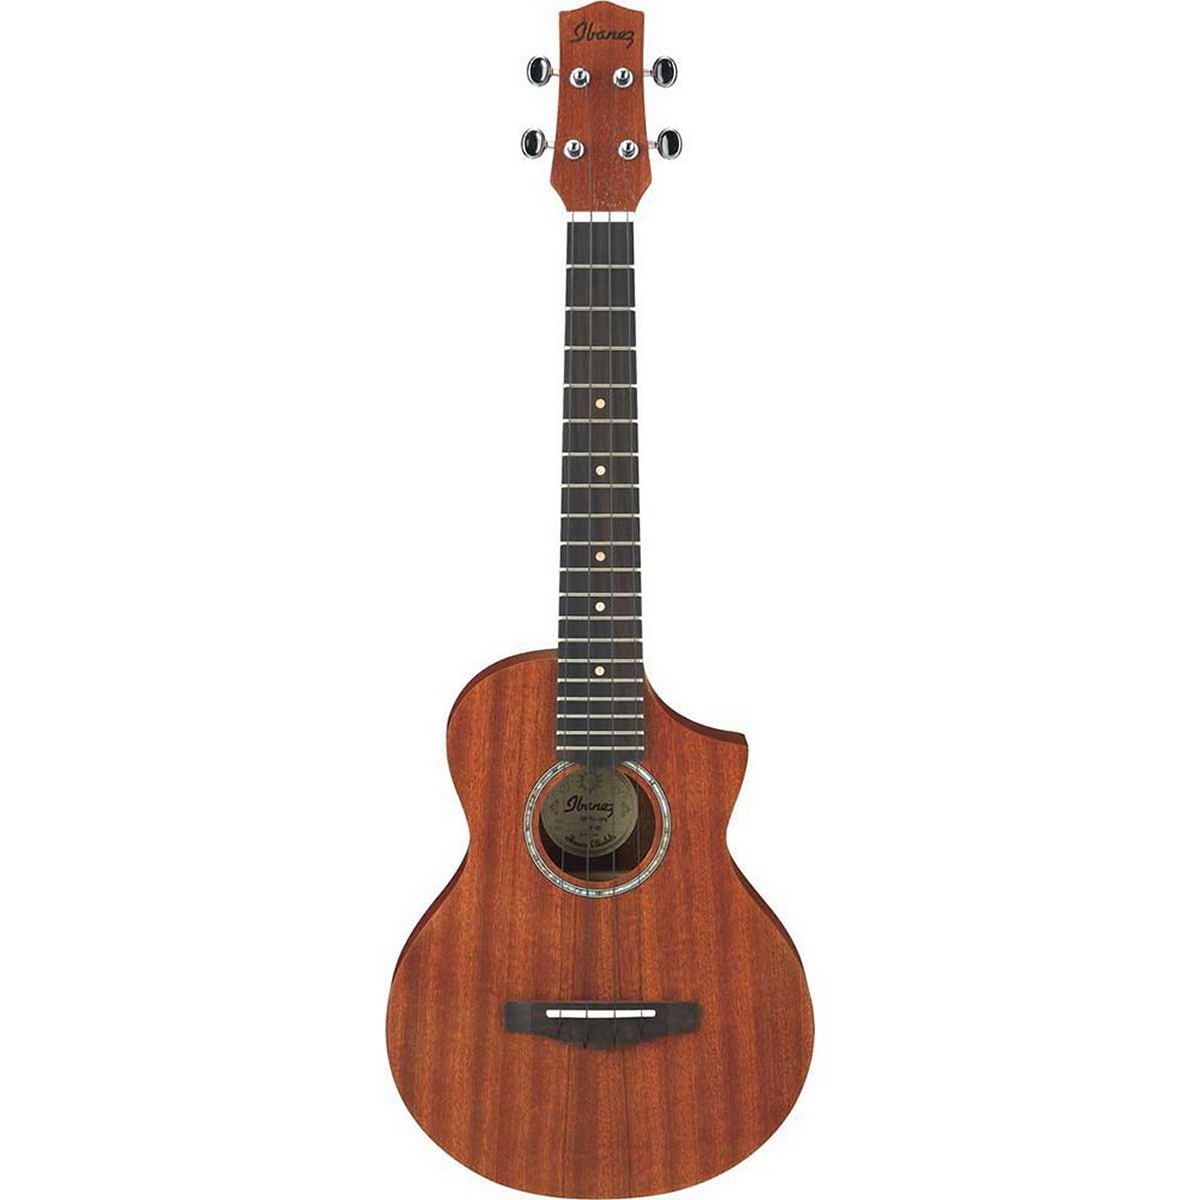 IBANEZ UEWT5-OPN OPEN PORE NATURAL